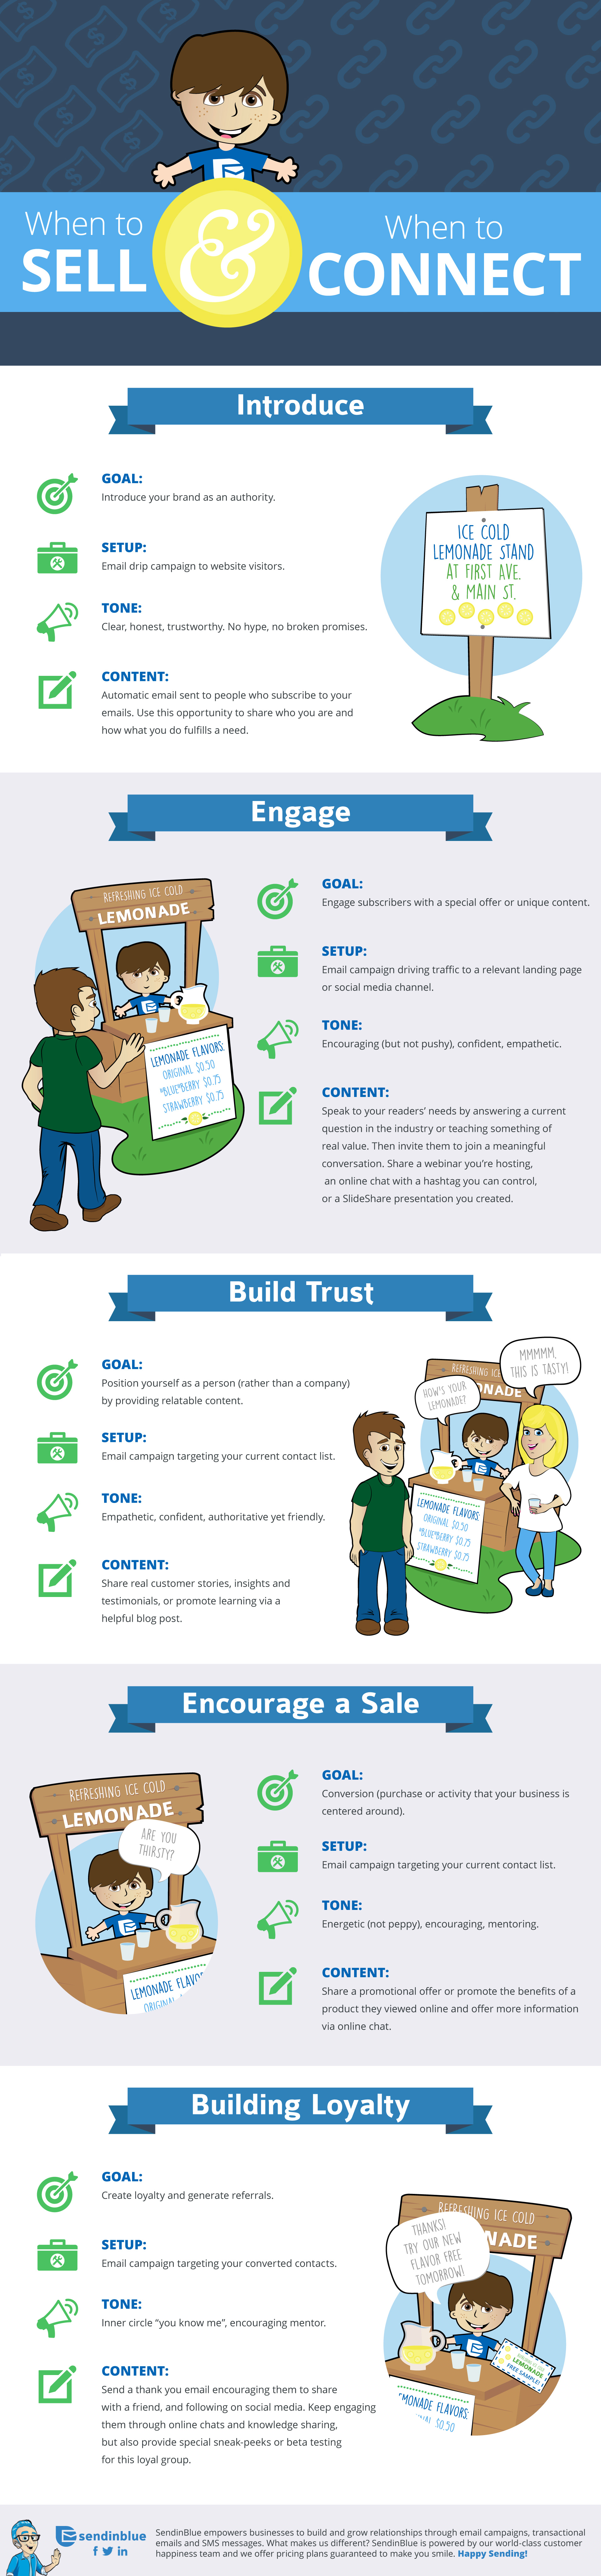 Email Marketing | Marketing Funnel Infographic